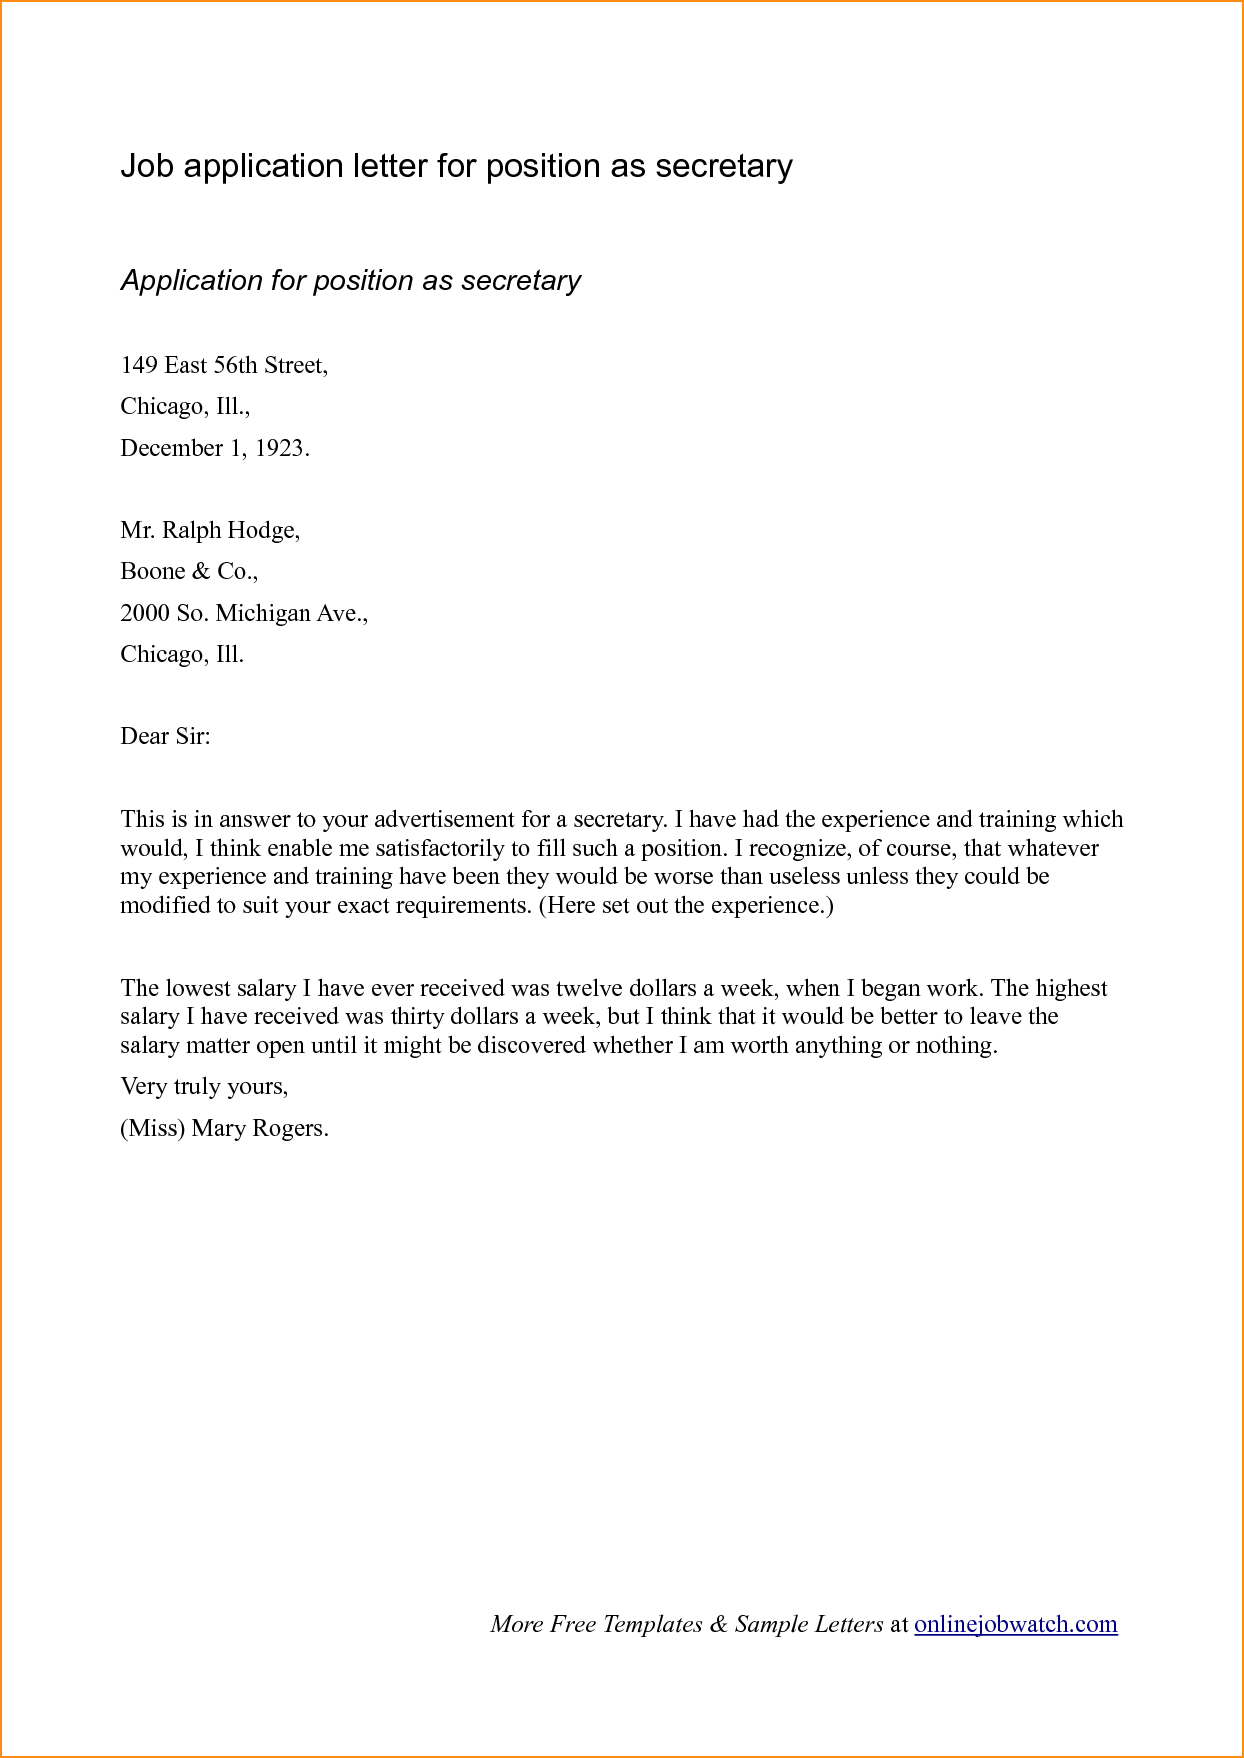 Letter sample eastern illinois university cover example job letter sample eastern illinois university cover example job application letters templates madrichimfo Images